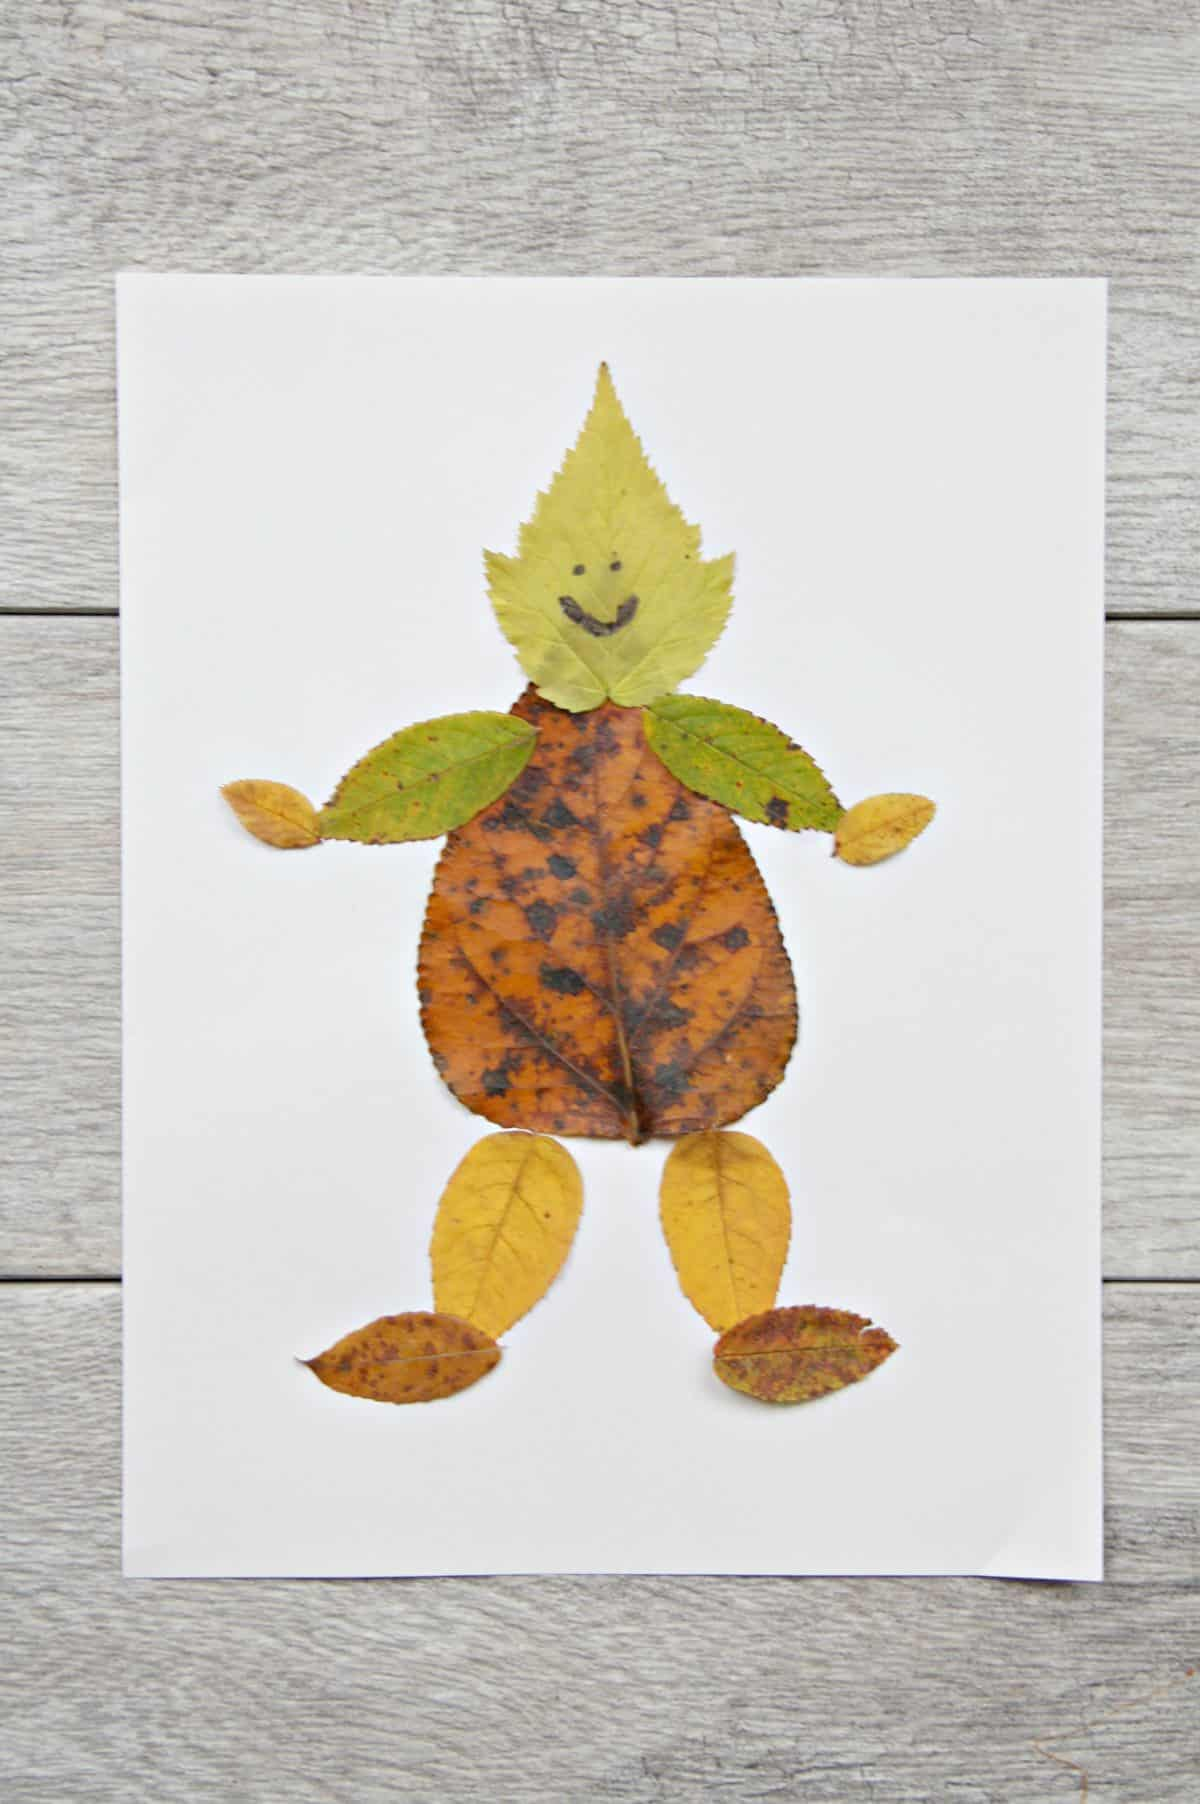 Leaf collage characters